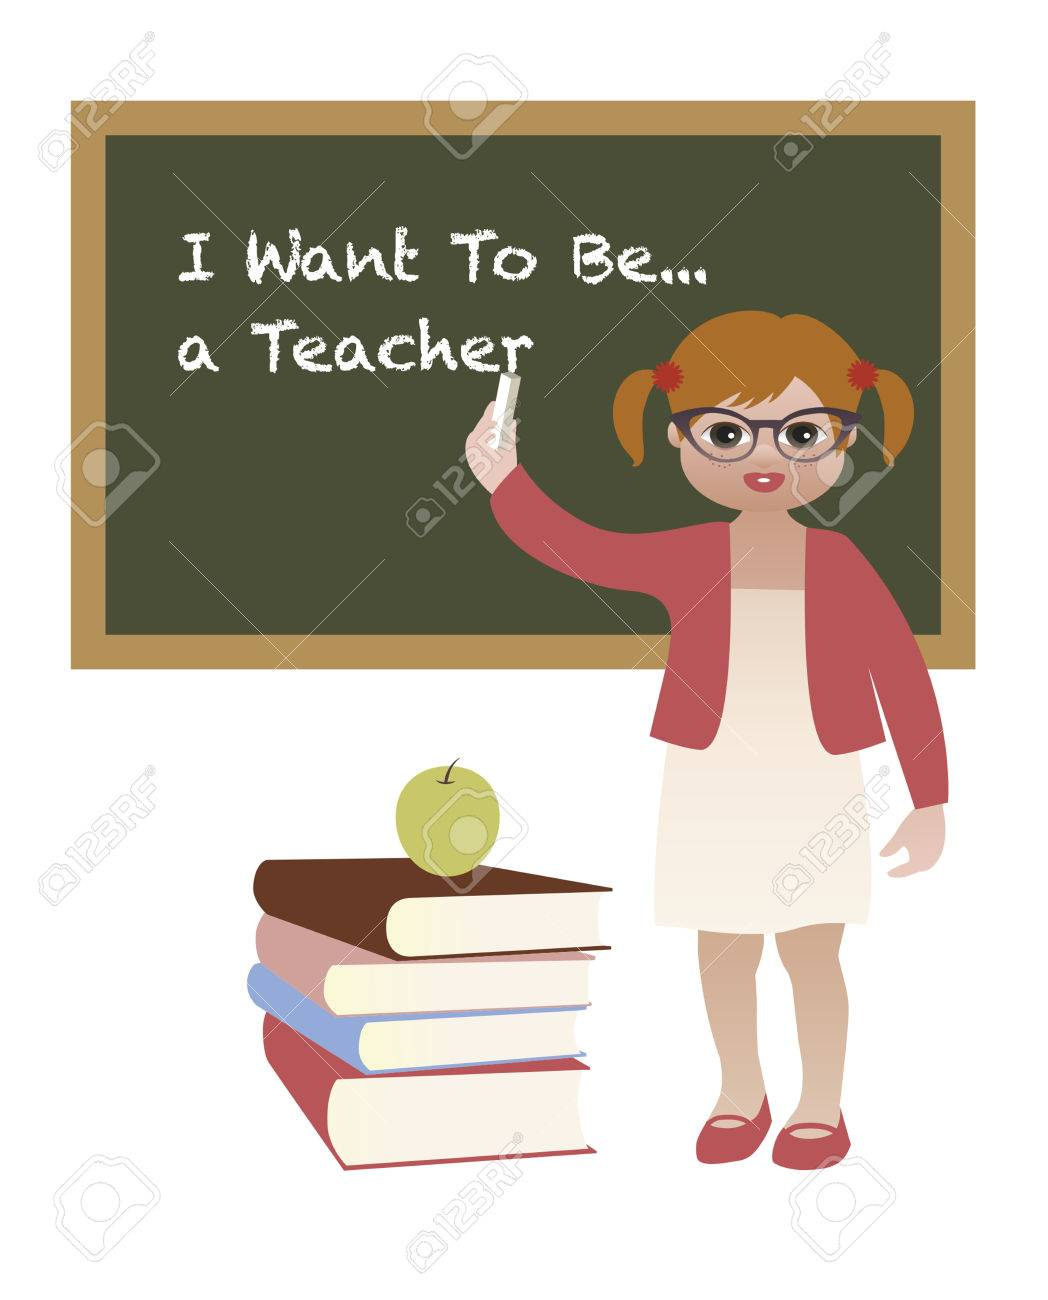 i want to be a teacher little girl showing future aspiration teaching stock